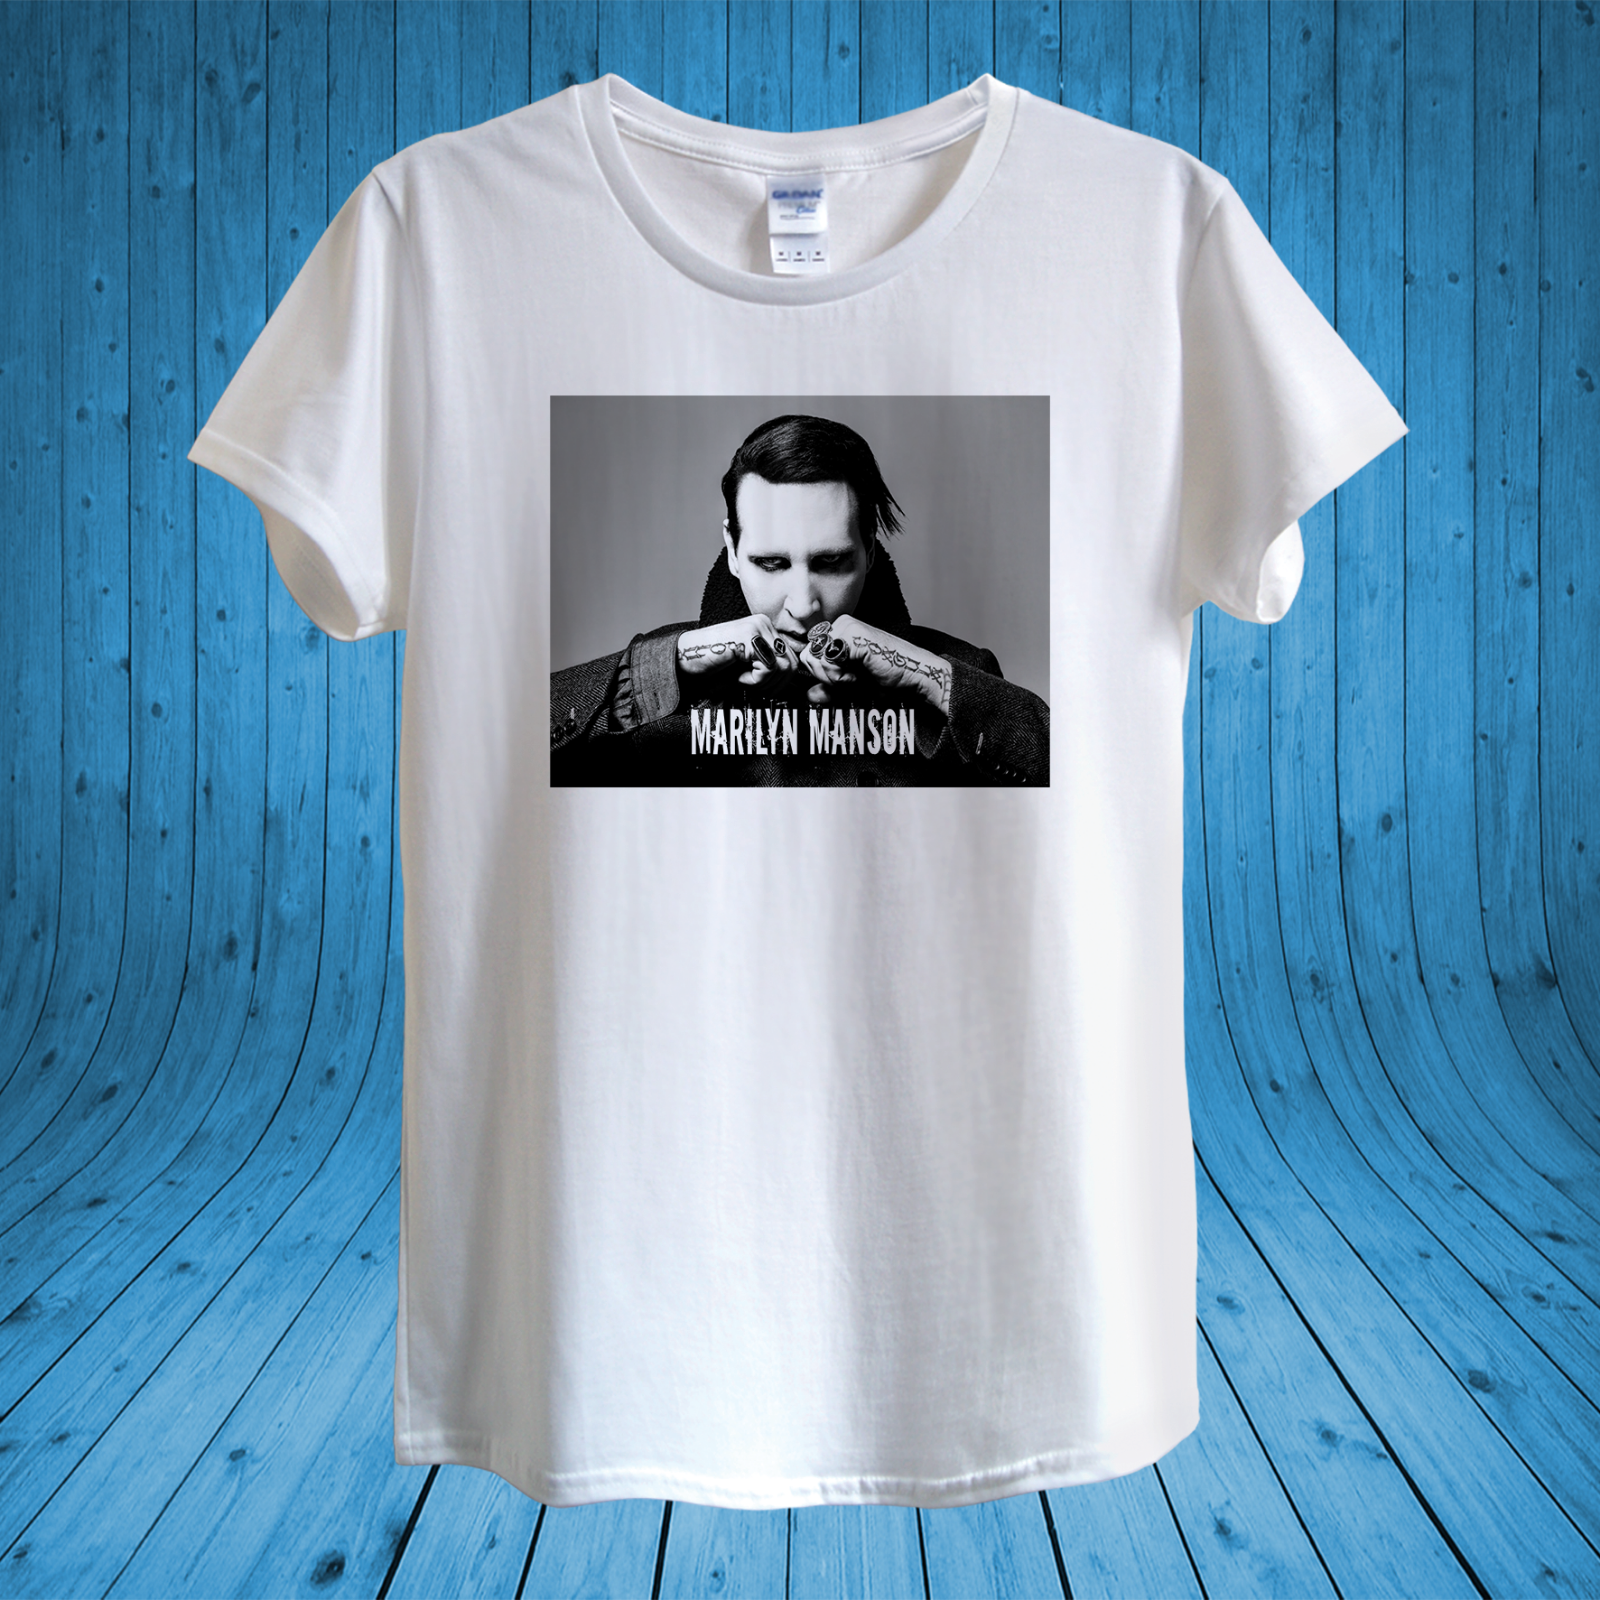 Marilyn Manson T-shirt Design unisex man women fitted Short Sleeve Tee Shirt